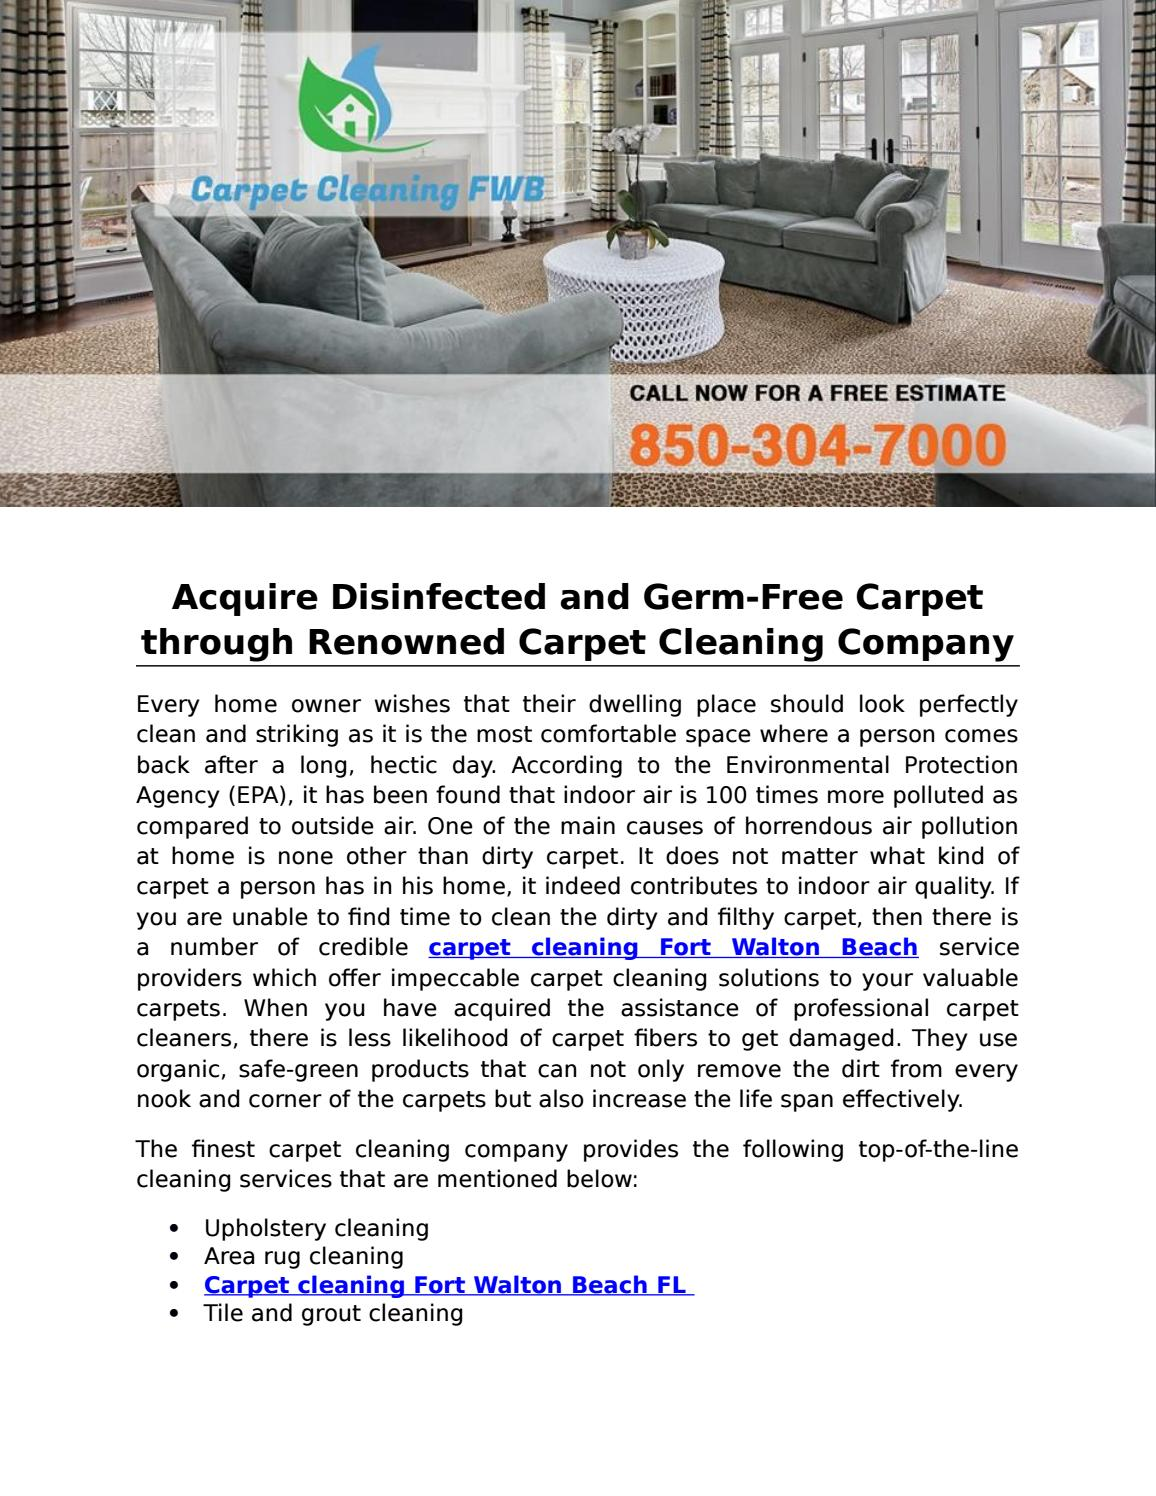 Acquire Disinfected And Germ Free